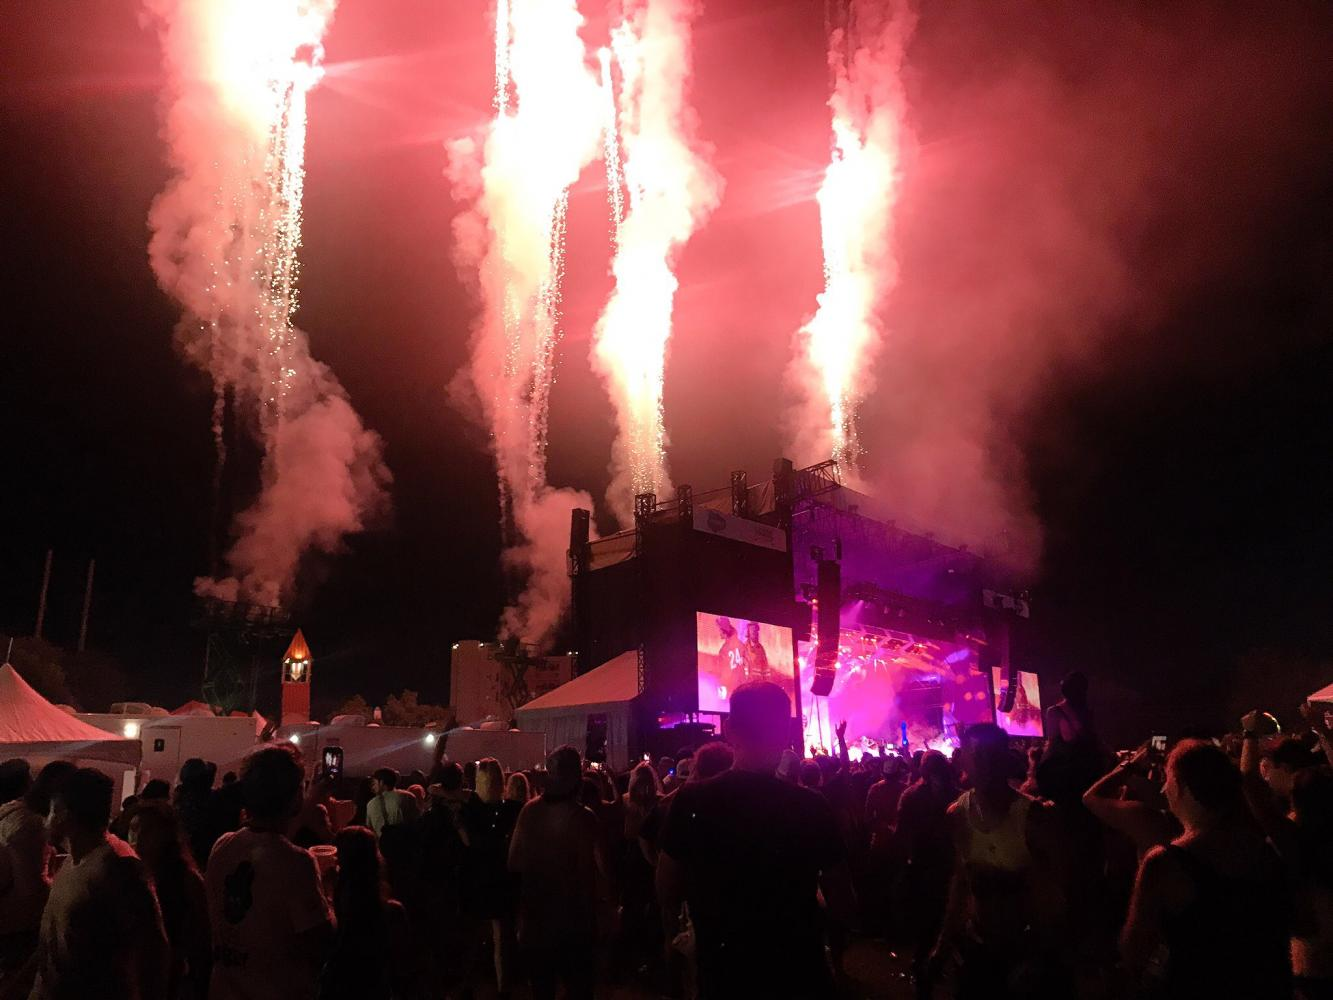 Bruno Mars sets off fireworks on the Salesforce stage during his performance on Saturday night.